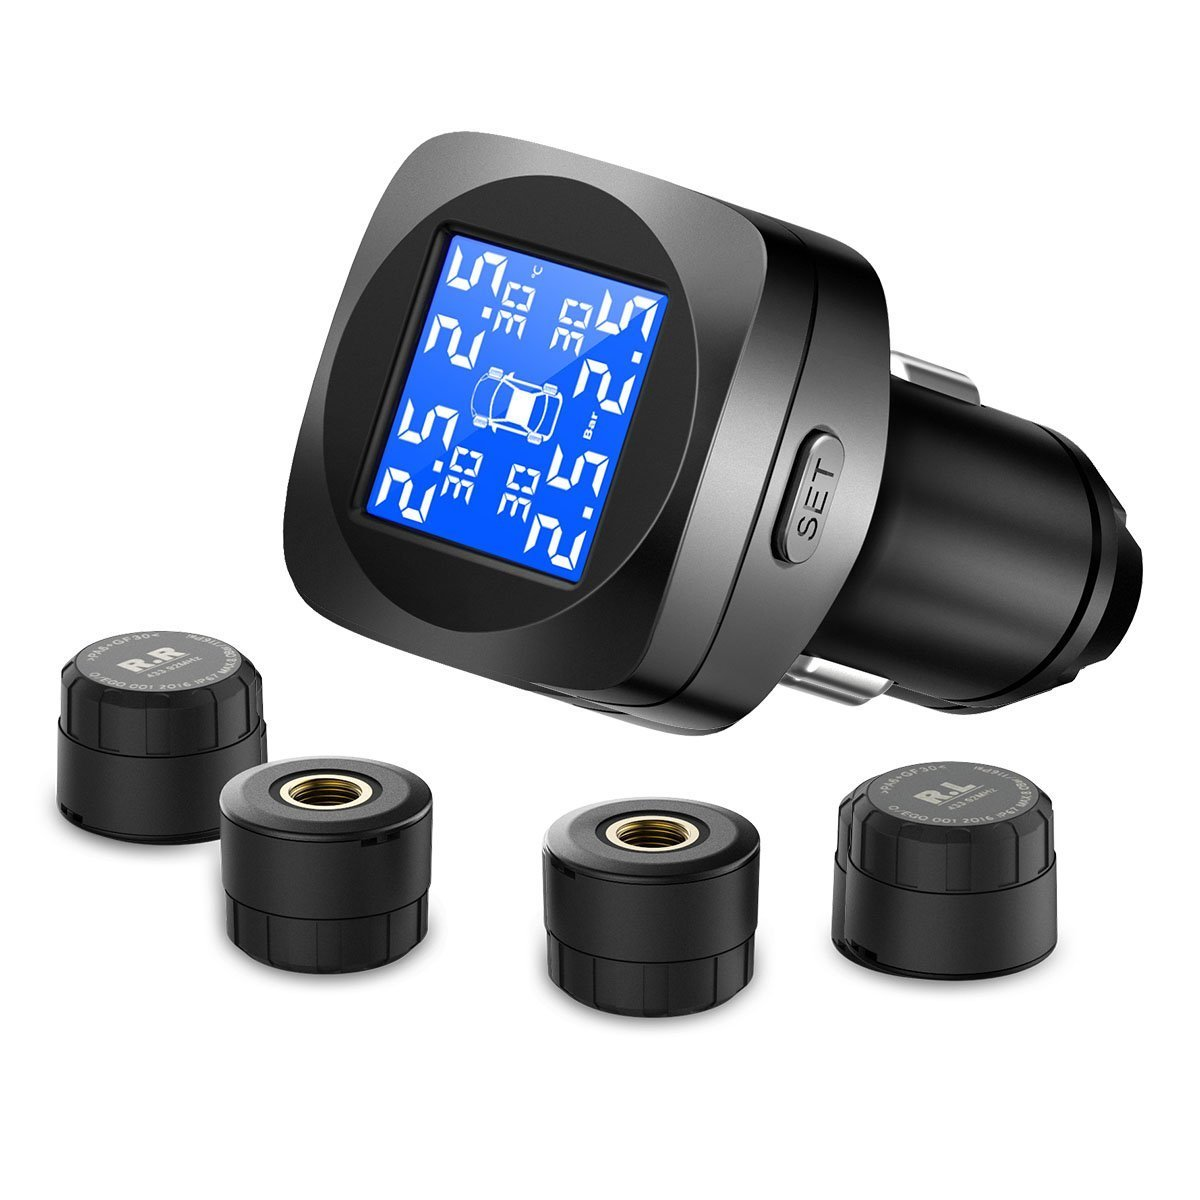 CHGeek Tire Pressure Monitoring System, Wireless TPMS with 4 External Sensors (Monitor 0-8.0 Bar/0-116 Psi, 65-85℃), 6 Alarms Real-time High Precision Monitor Temperature & Pressure